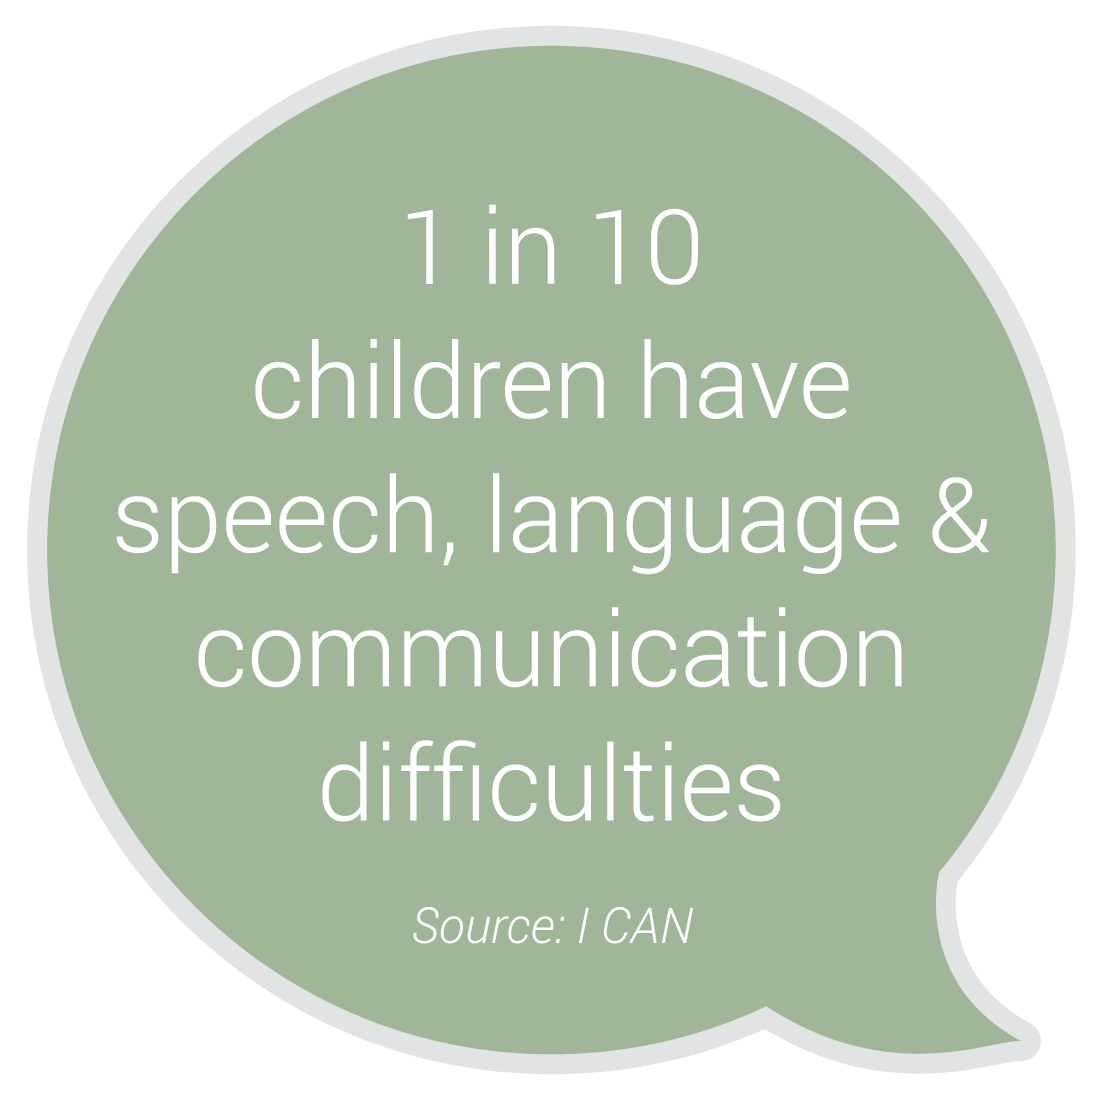 speech langauage Speech-language & audiology canada we are a membership-driven organization that supports , promotes and elevates the professions of our members and associates we are the only national organization passionately supporting and representing speech-language pathologists, audiologists and communication health assistants inclusively.